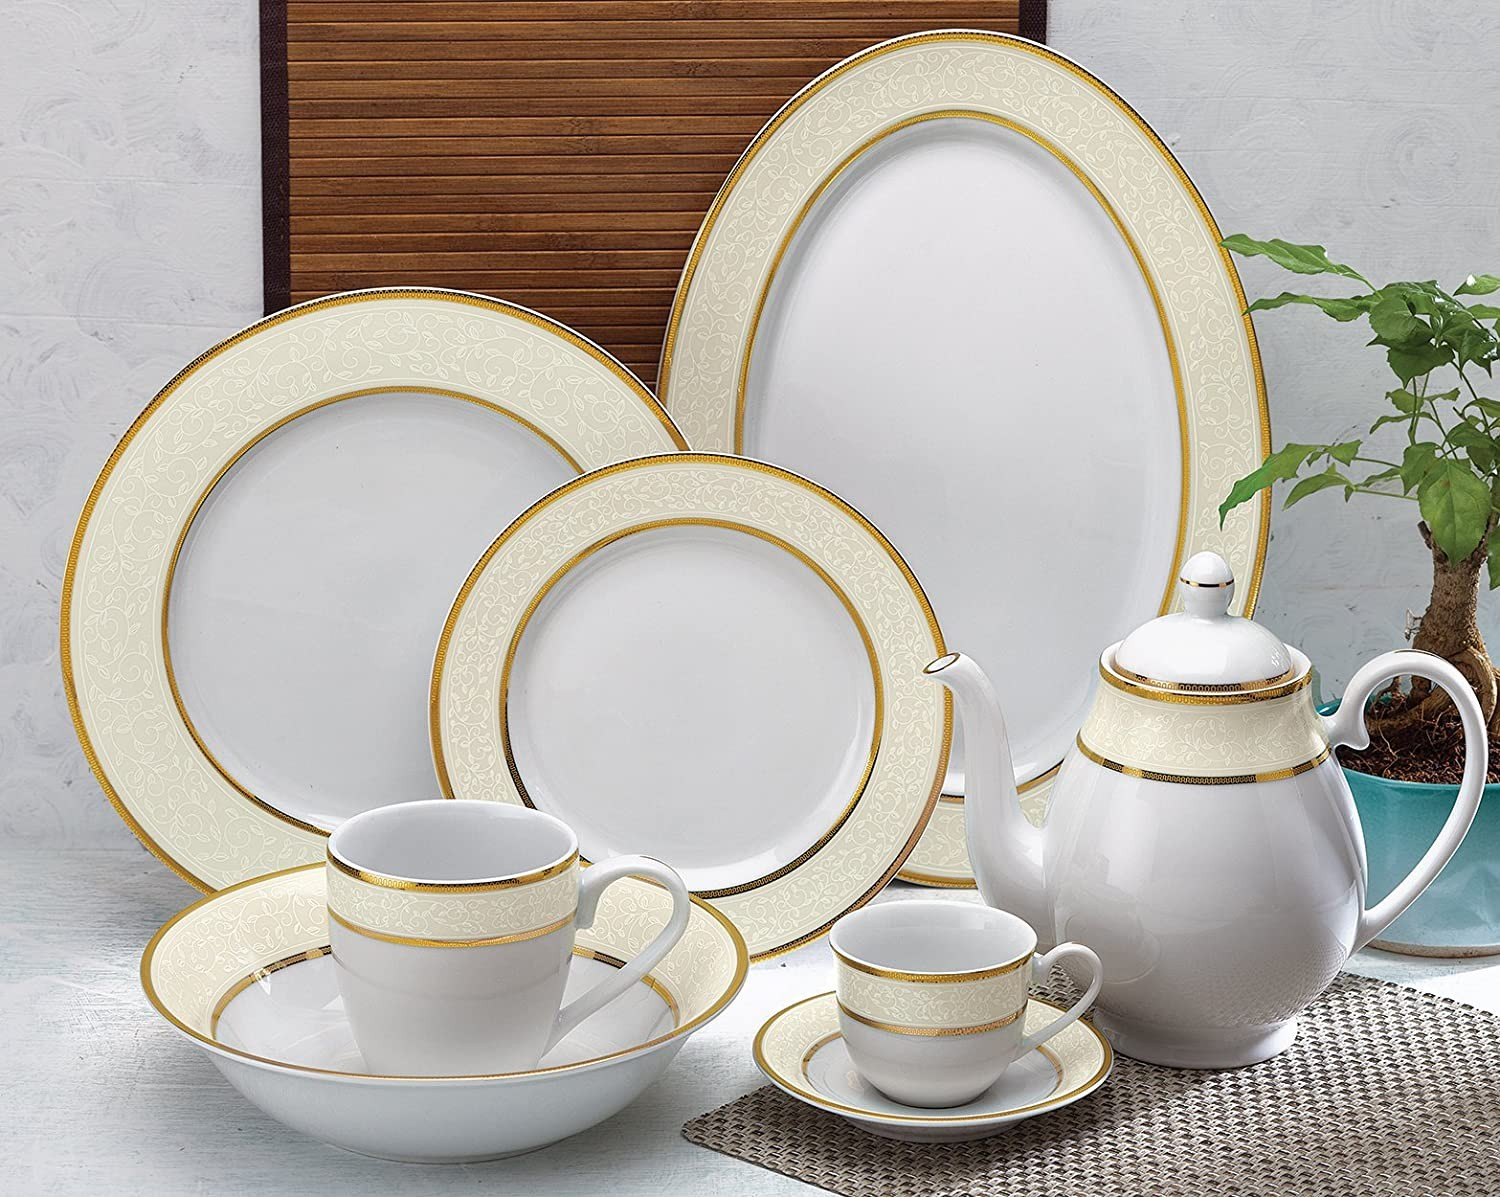 golden border white crockery set